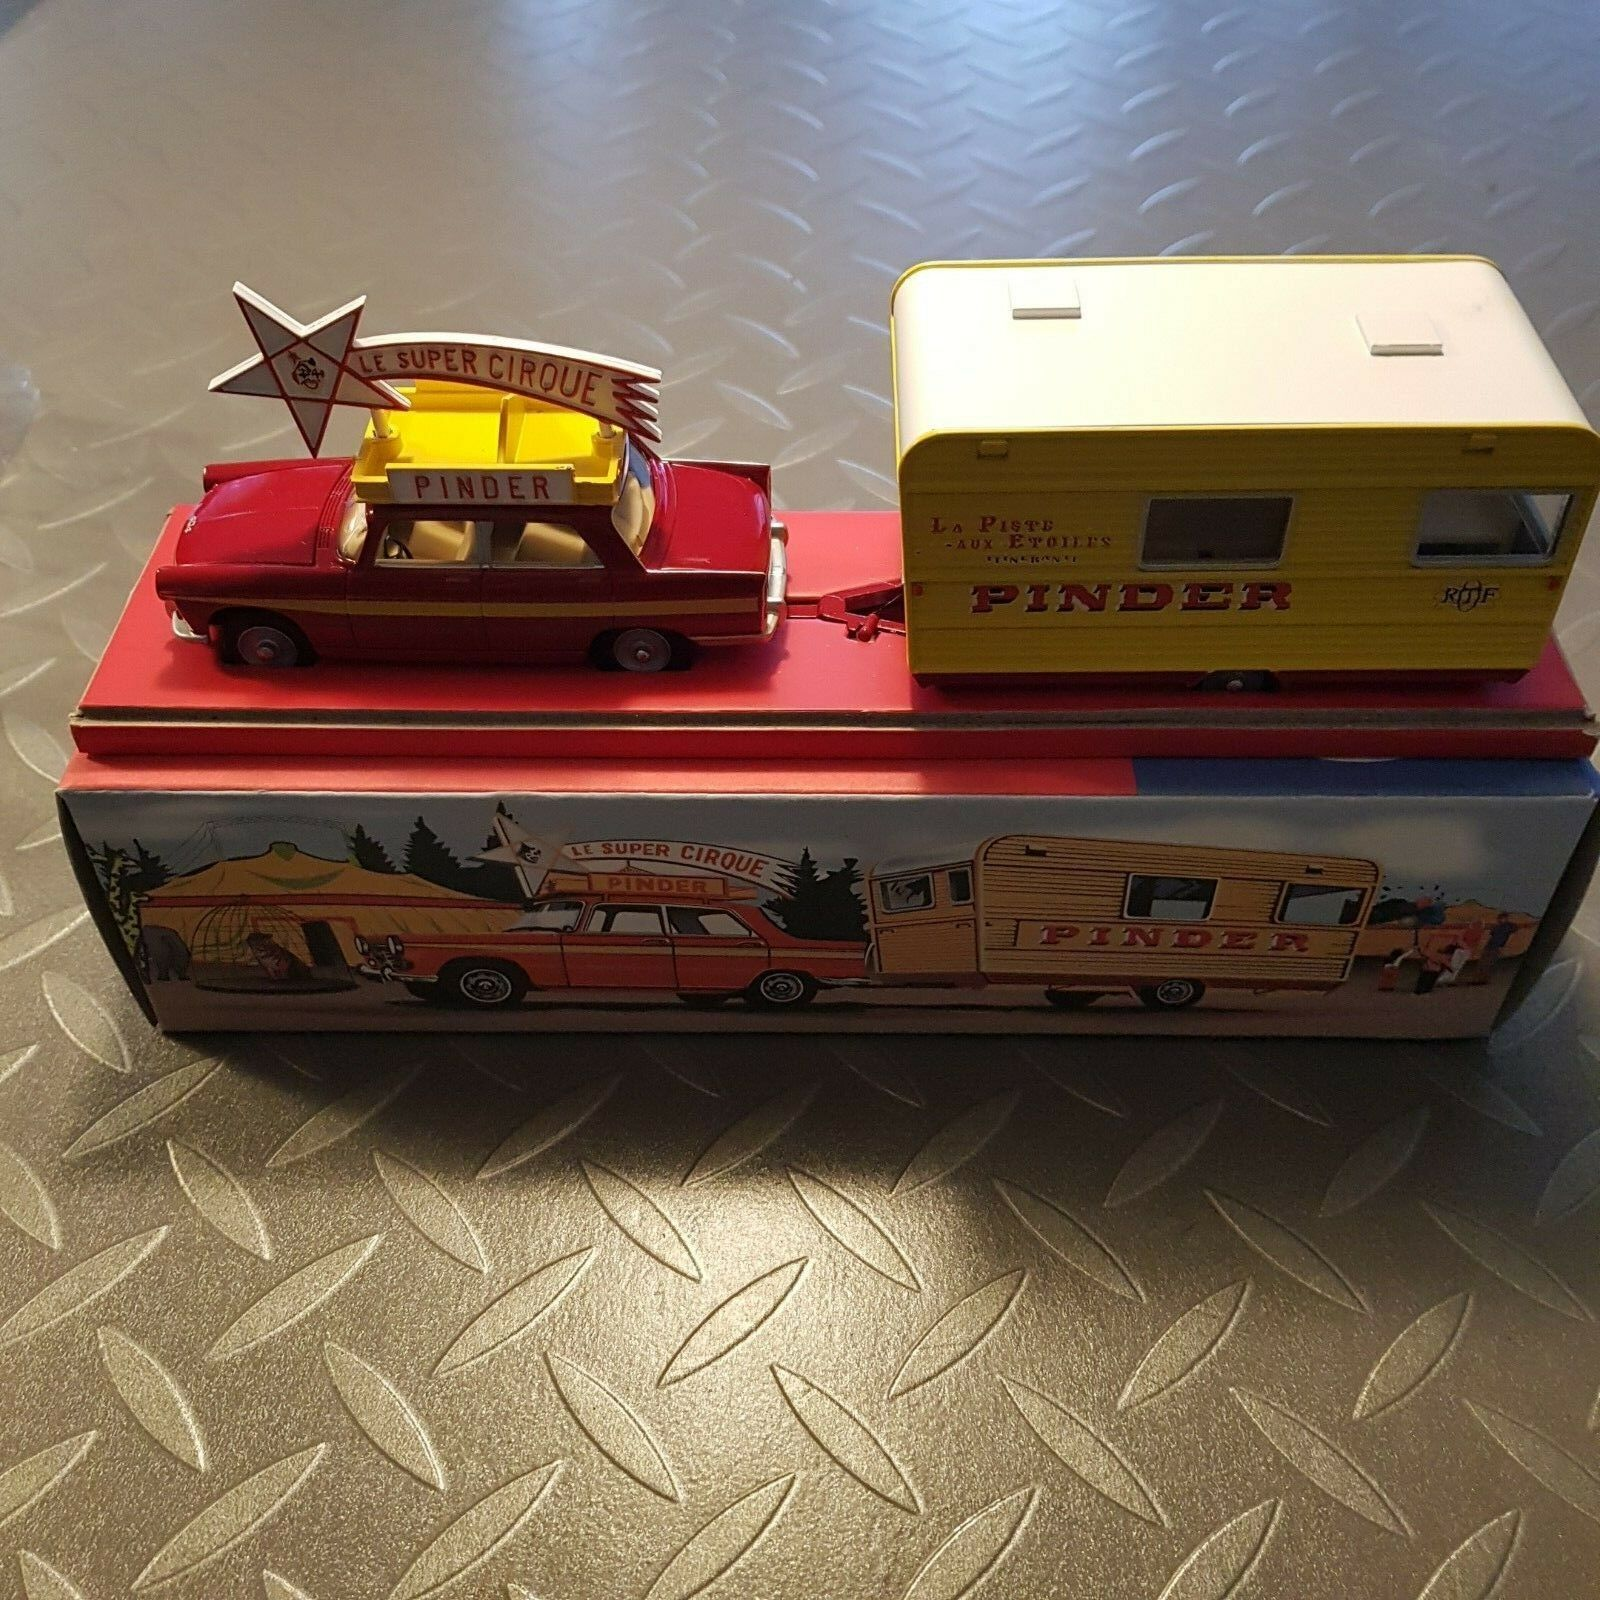 DINKY 882 PRODUCTION  FROM NOREV (CIJ) PEUGEOT 404 AND PINDER CARAVAN - IN BOX